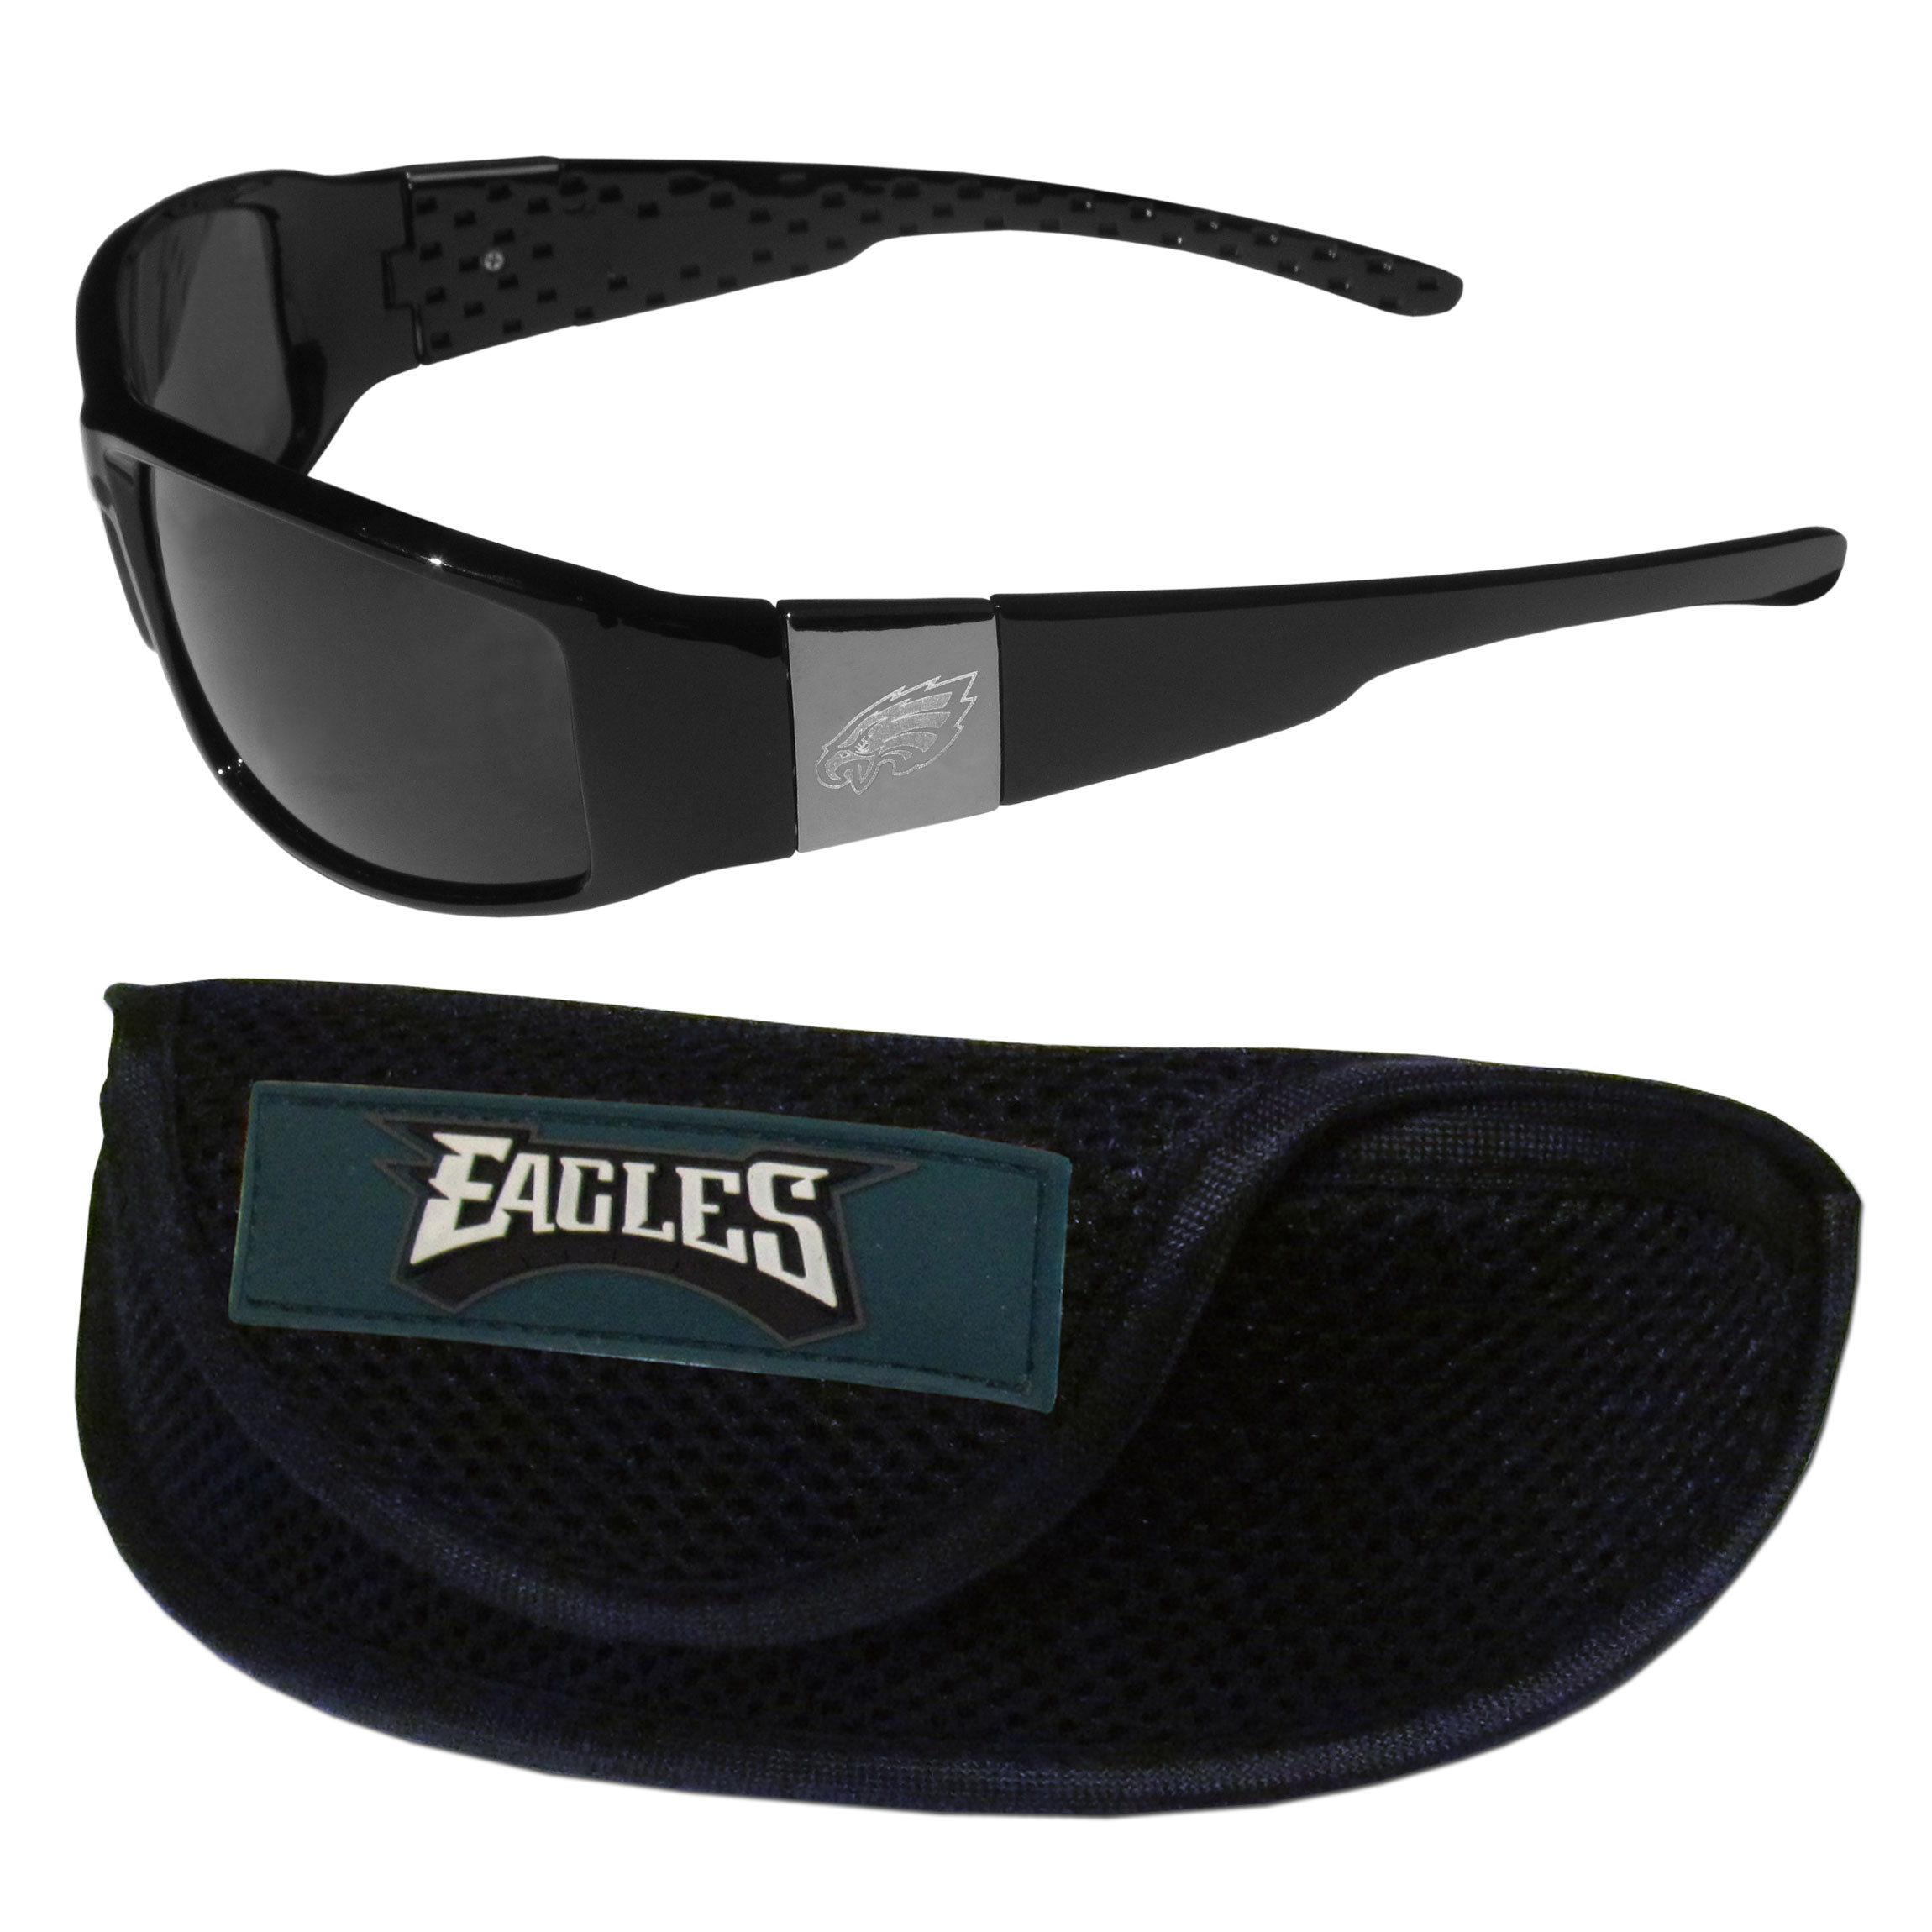 Philadelphia Eagles Chrome Wrap Sunglasses and Sports Case - Our sleek and stylish Philadelphia Eagles chrome wrap sunglasses and our sporty mesh case. The sunglasses feature etched team logos on each arm and 100% UVA/UVB protection. The case features a large and colorful team emblem.